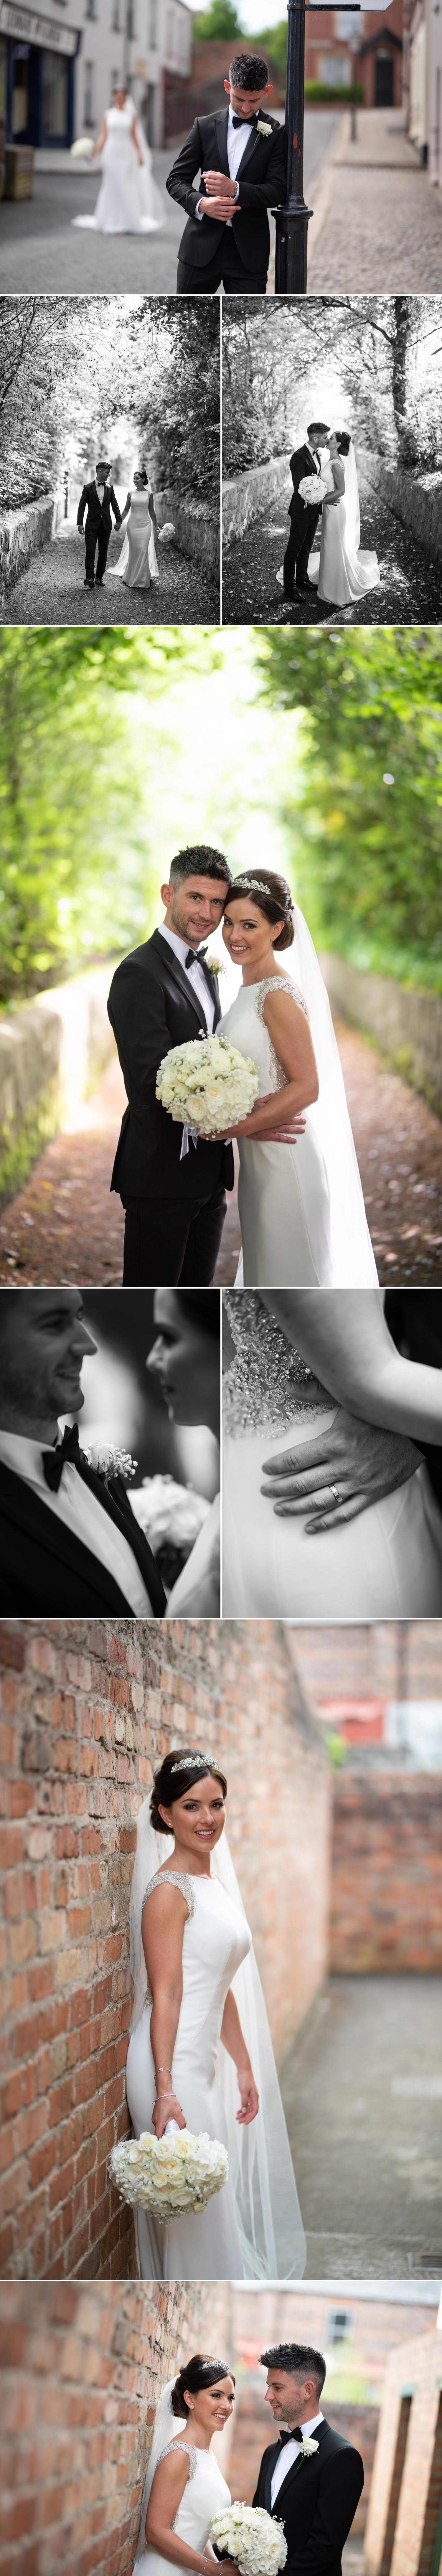 Cultra Manor Wedding Bangor 14.jpg